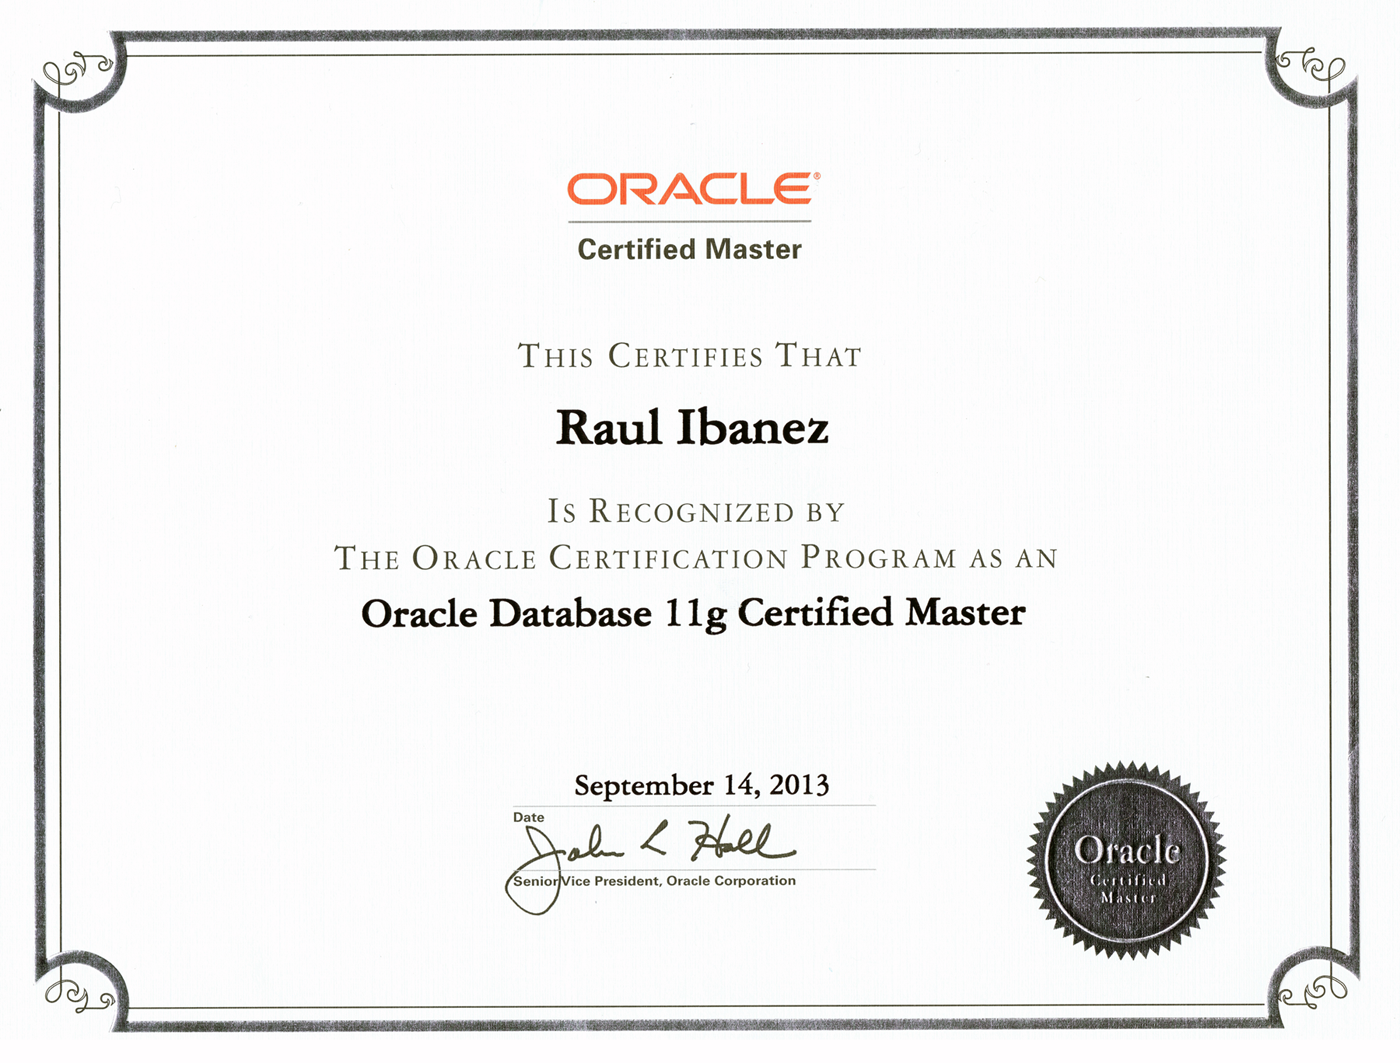 Oracle Certified Master 11g Title